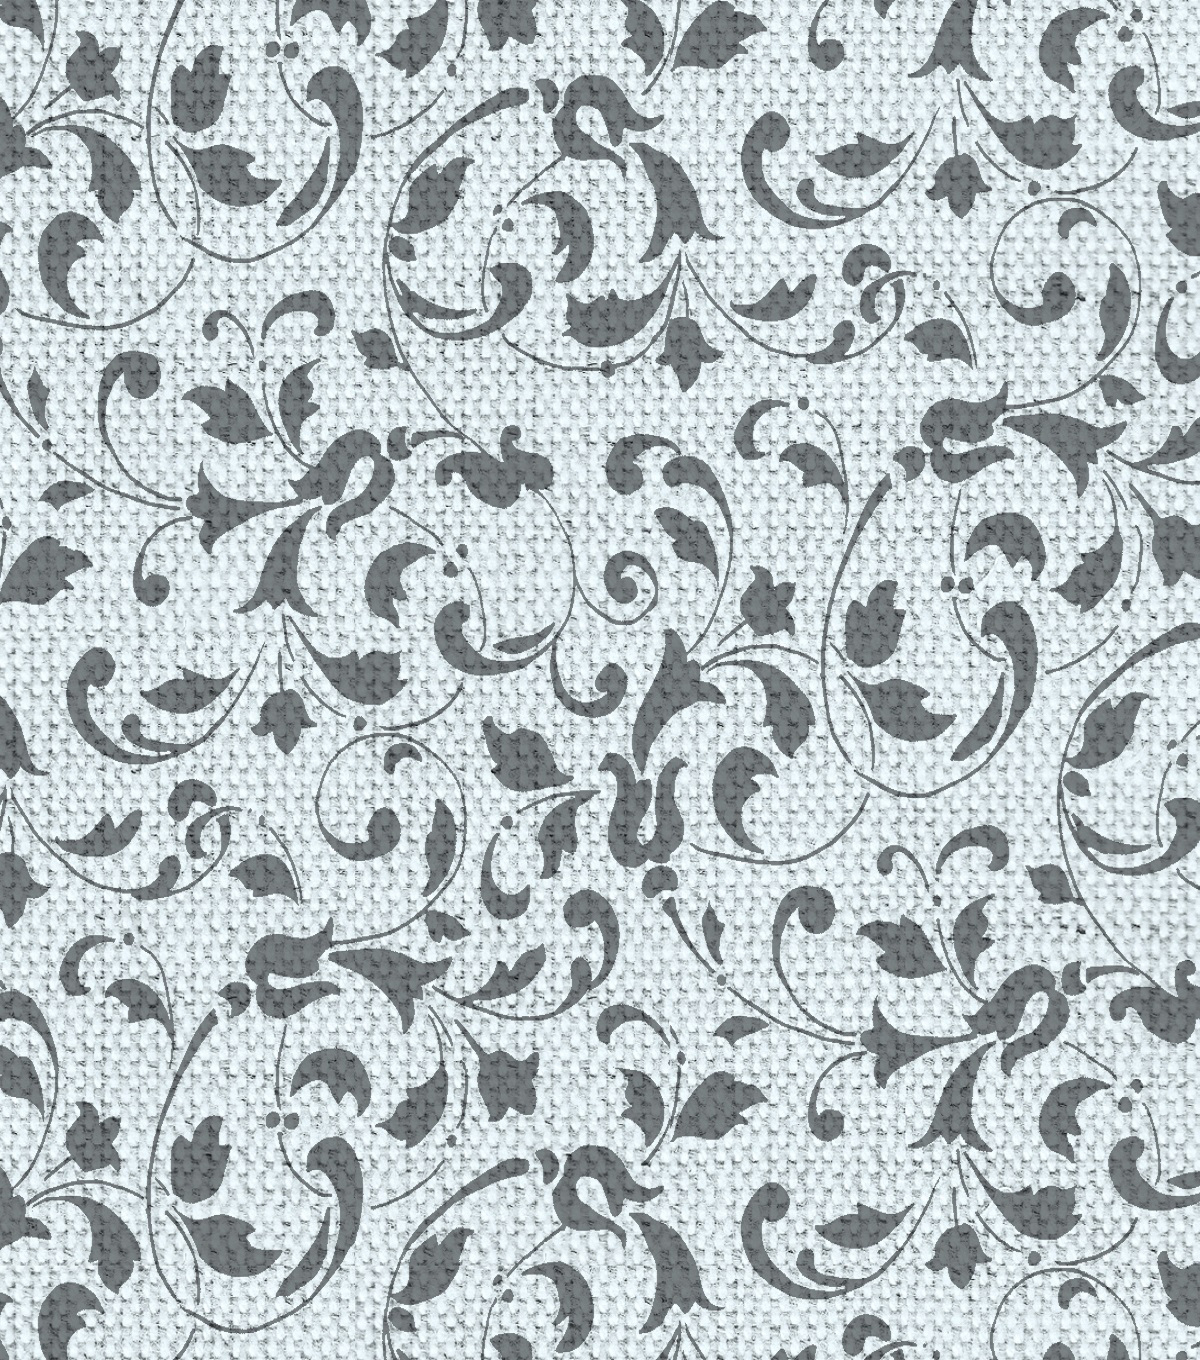 Keepsake Calico™ Cotton Fabric-Scrapbook Scroll Barouche On Texture??